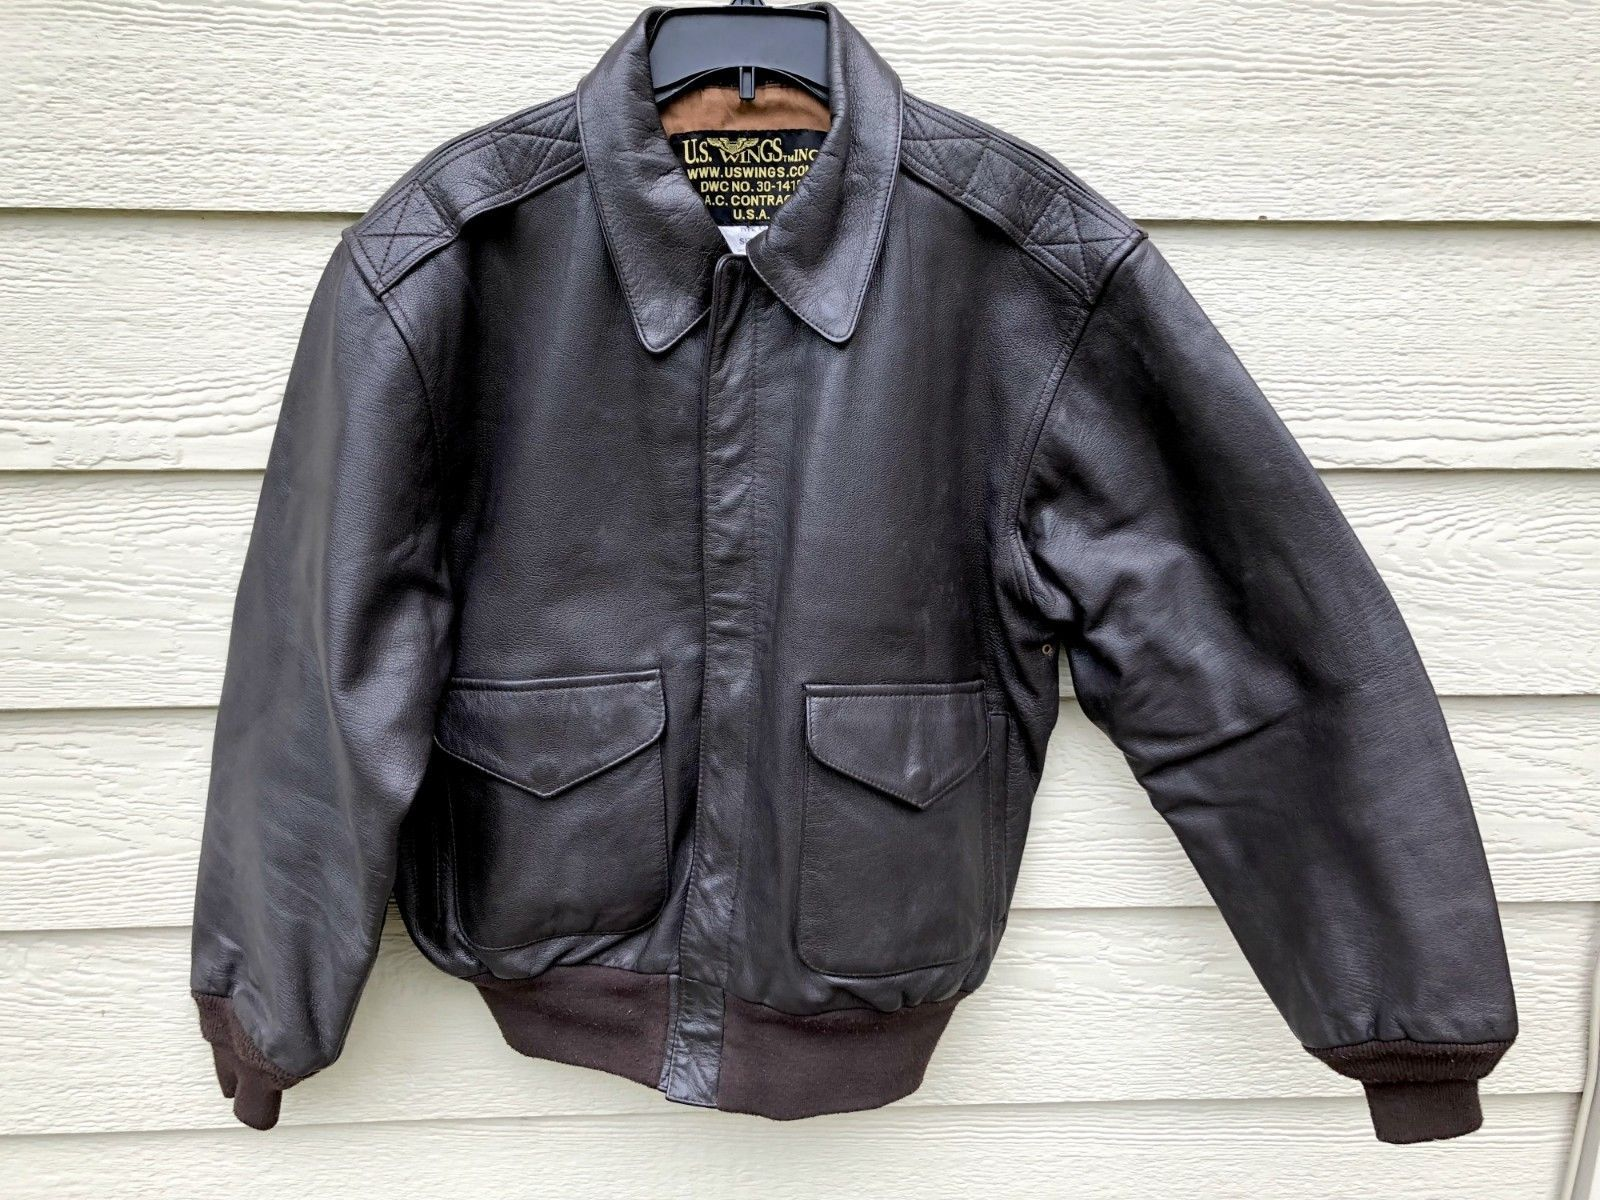 Primary image for US AIR FORCE USAF FLYERS MEN'S LEATHER BOMBER TYPE A-2 JACKET - SIZE LARGE